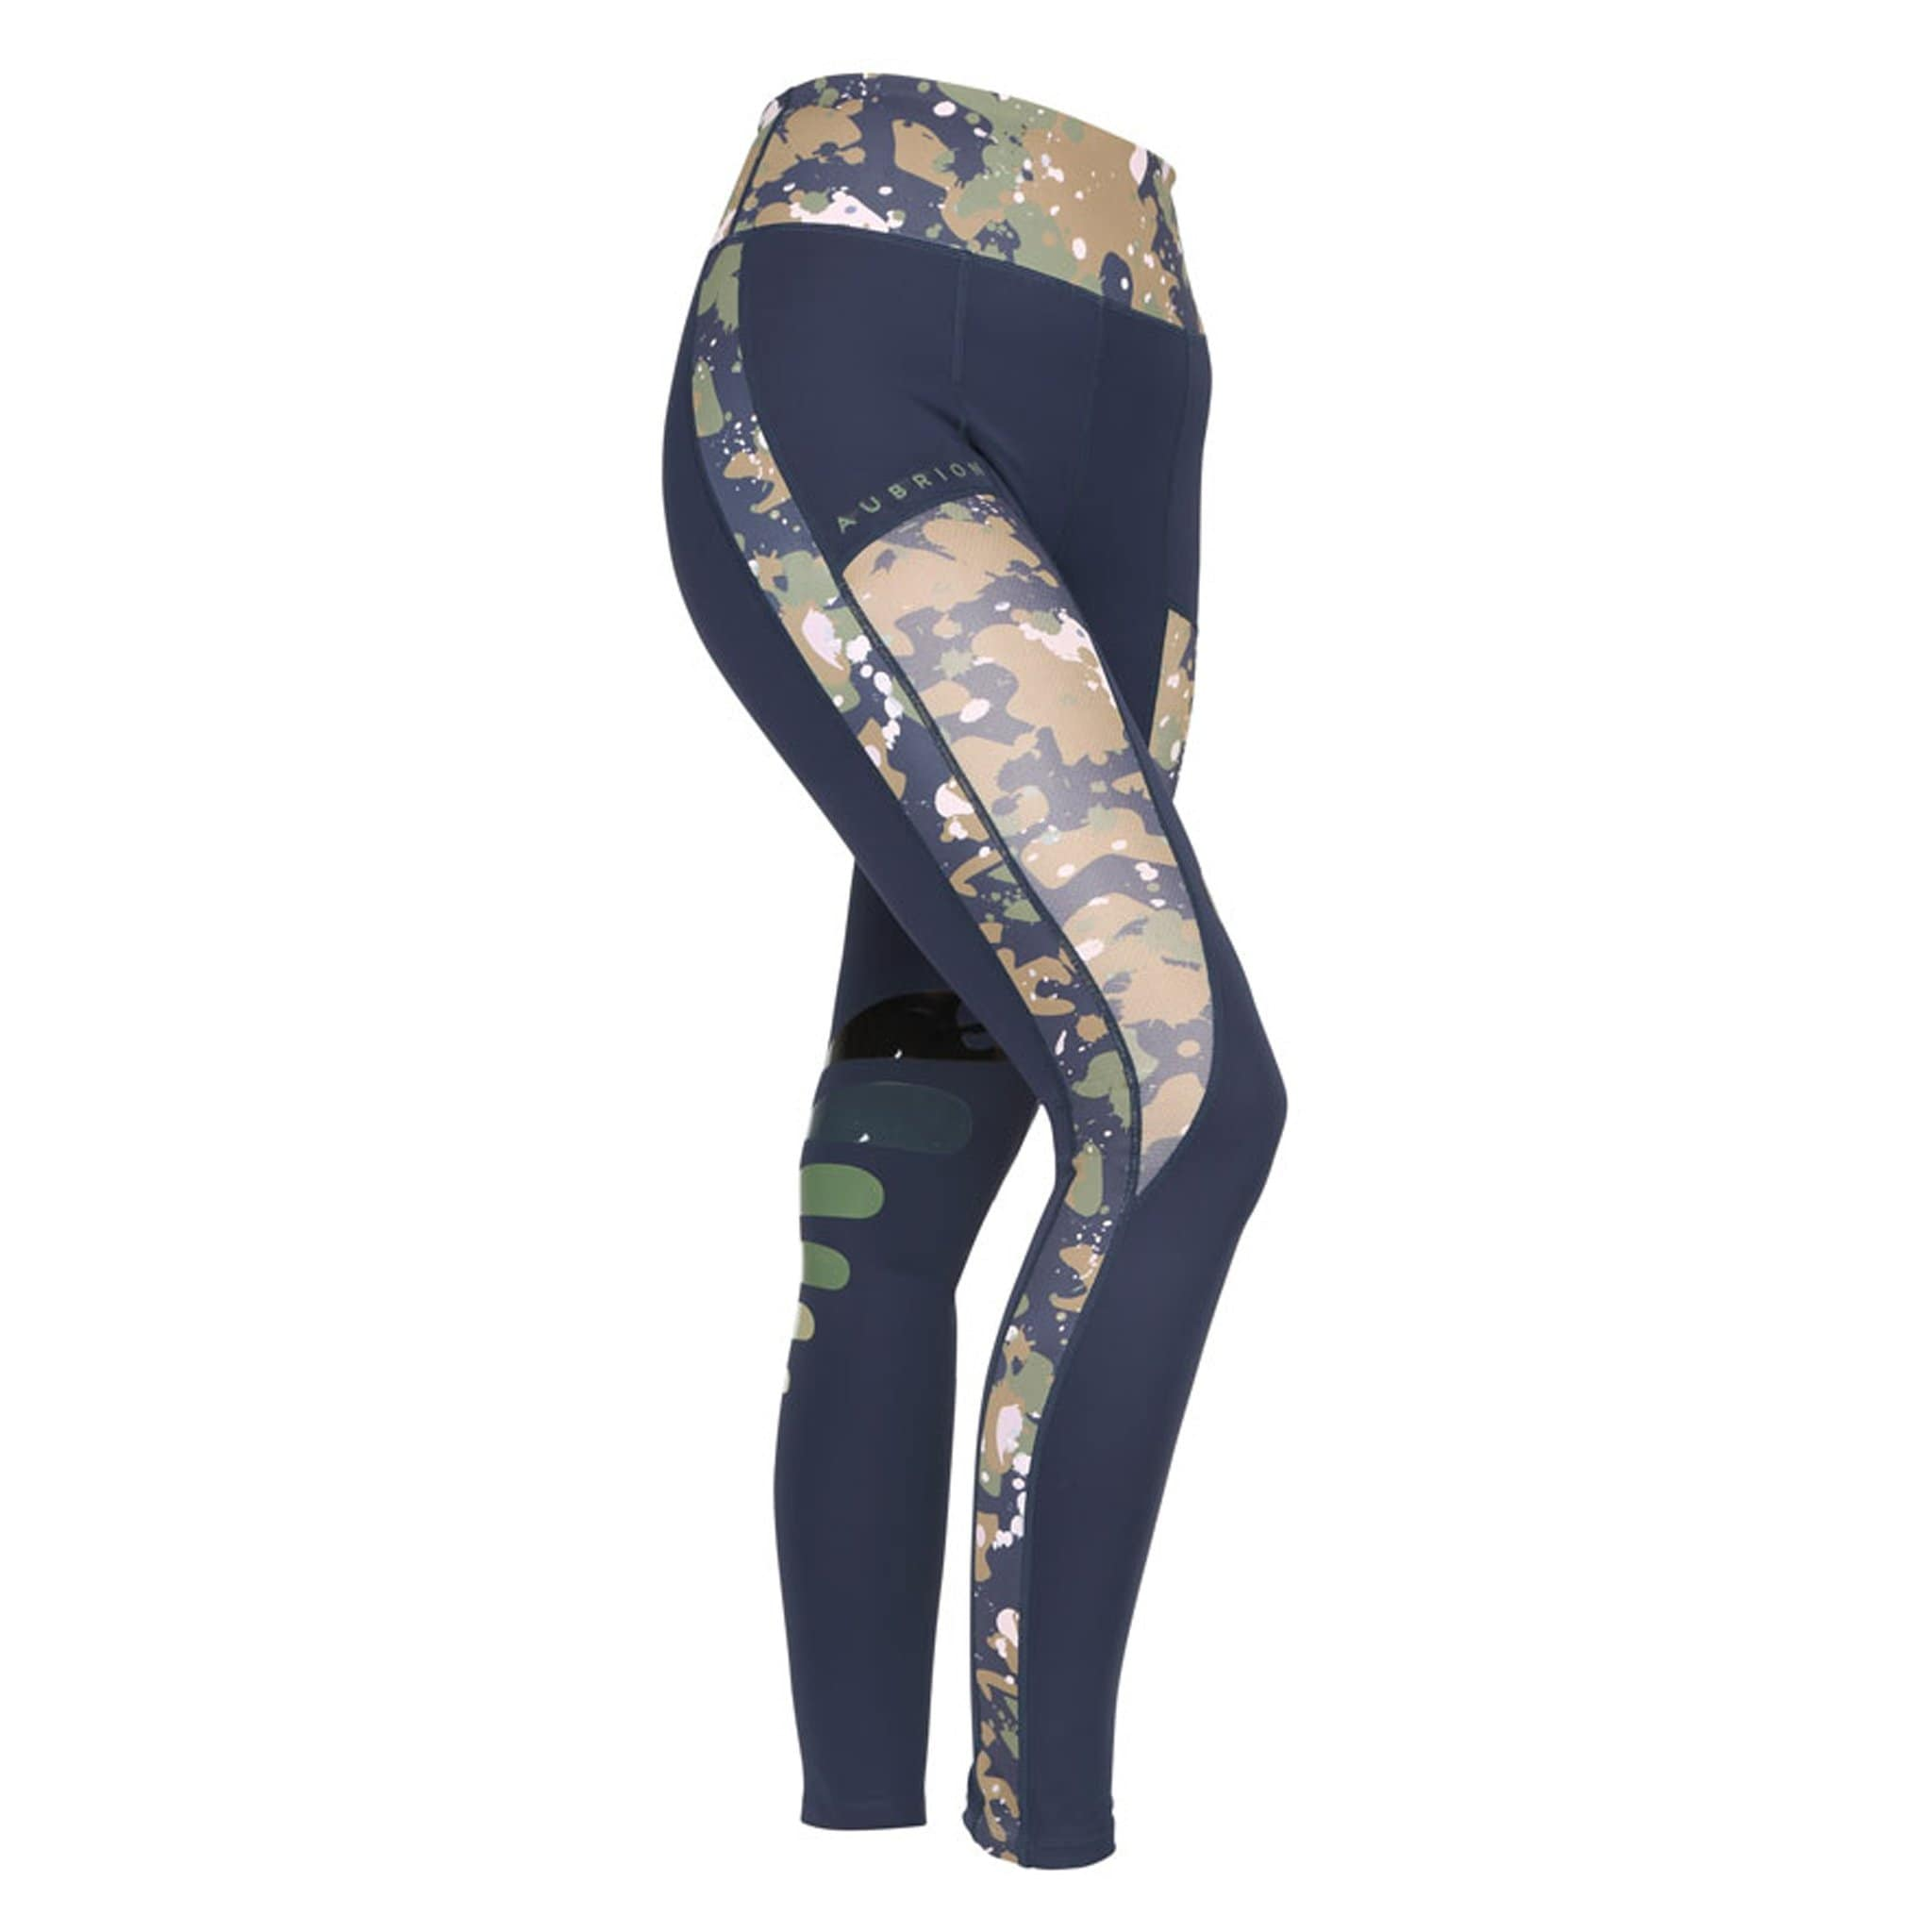 Shires Aubrion Kingsbury Silicone Knee Patch Riding Tights 8171 Navy and Camo Front